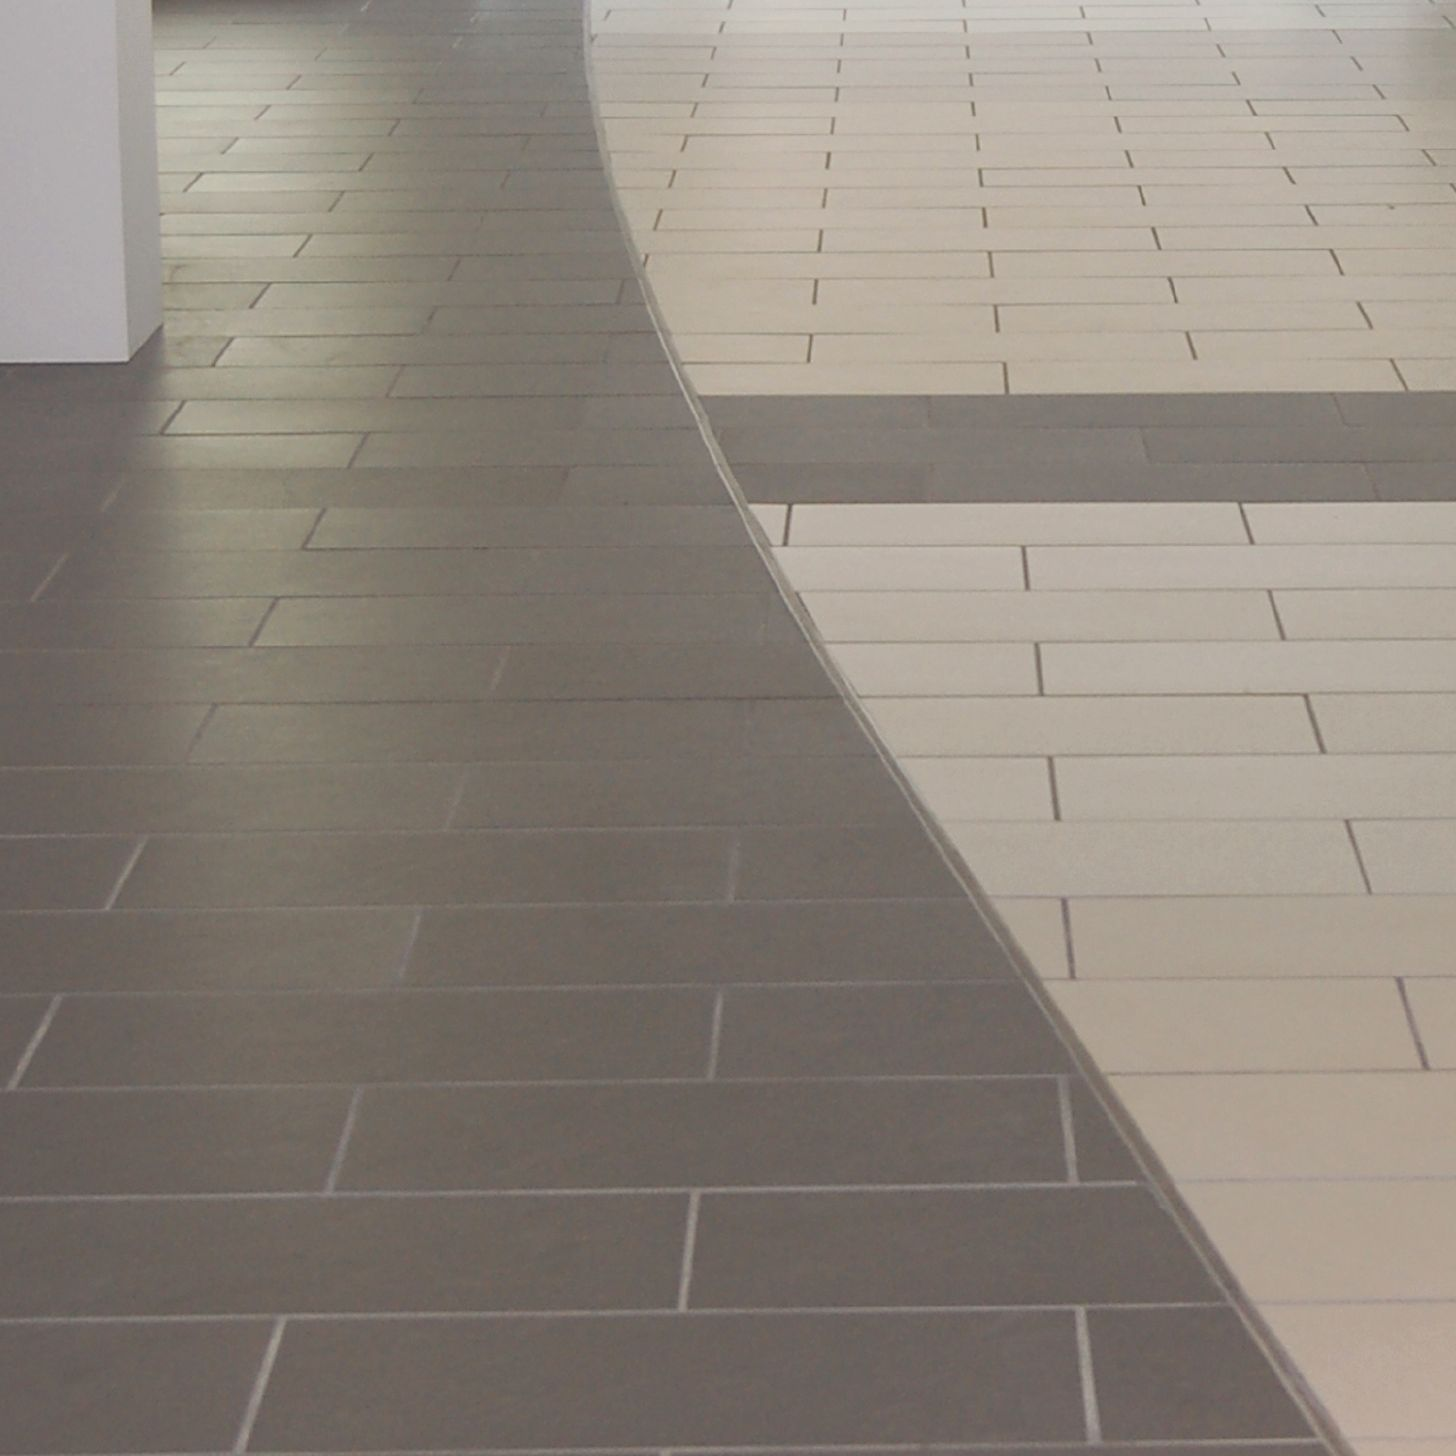 in dakota through the down faith give beige guide will staff floors you college to process flooring station decos a our experienced on or come floor call more tile us